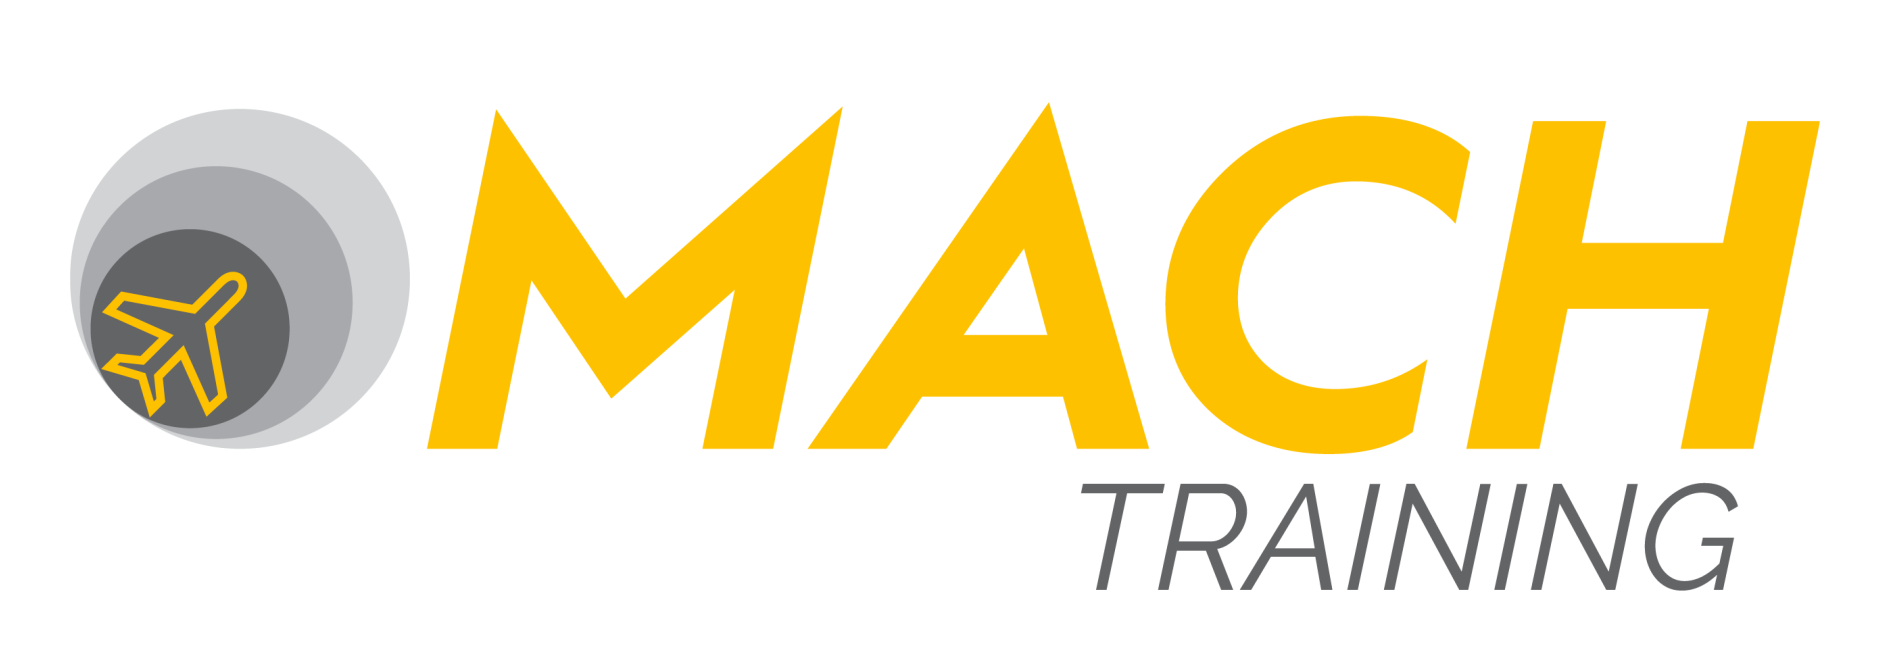 https://www.abraphe.org.br/wp-content/uploads/2019/04/mach-training.png